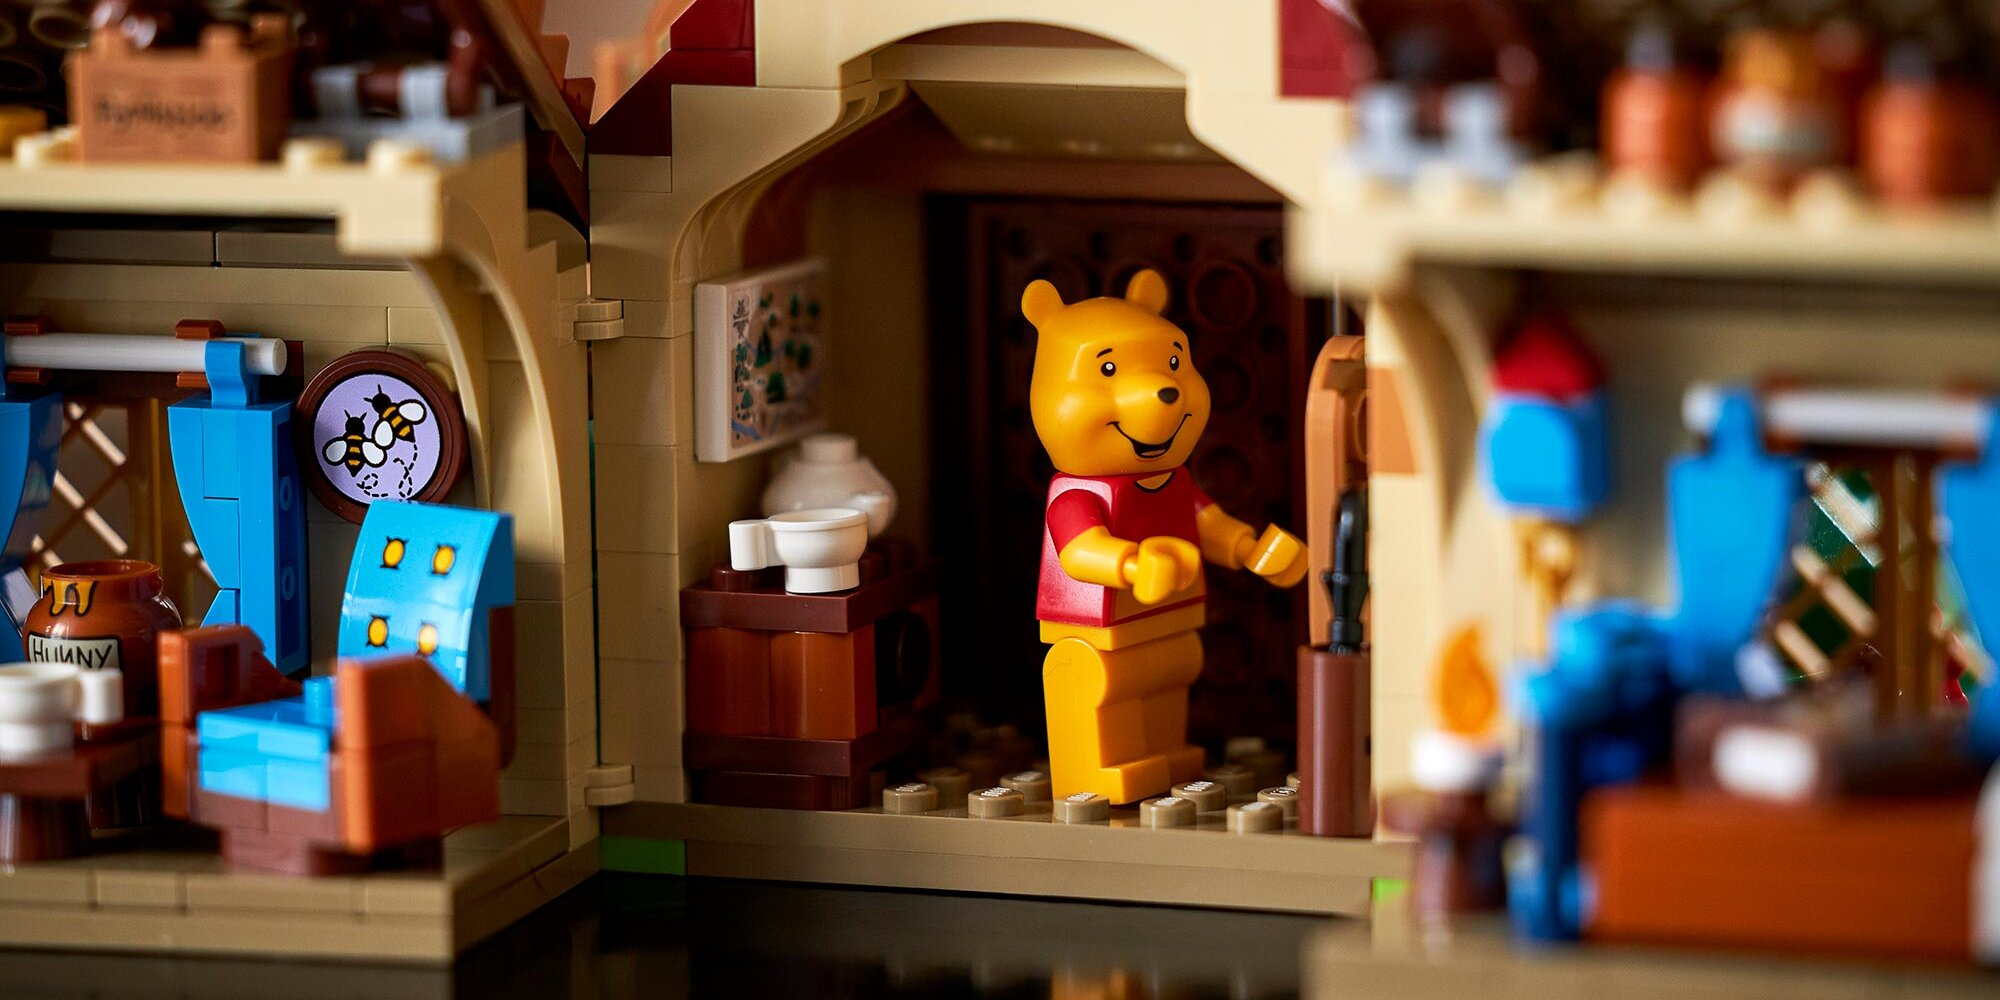 Kids, don't bother! Lego launches sweet, adults-only 'Winnie the Pooh' set